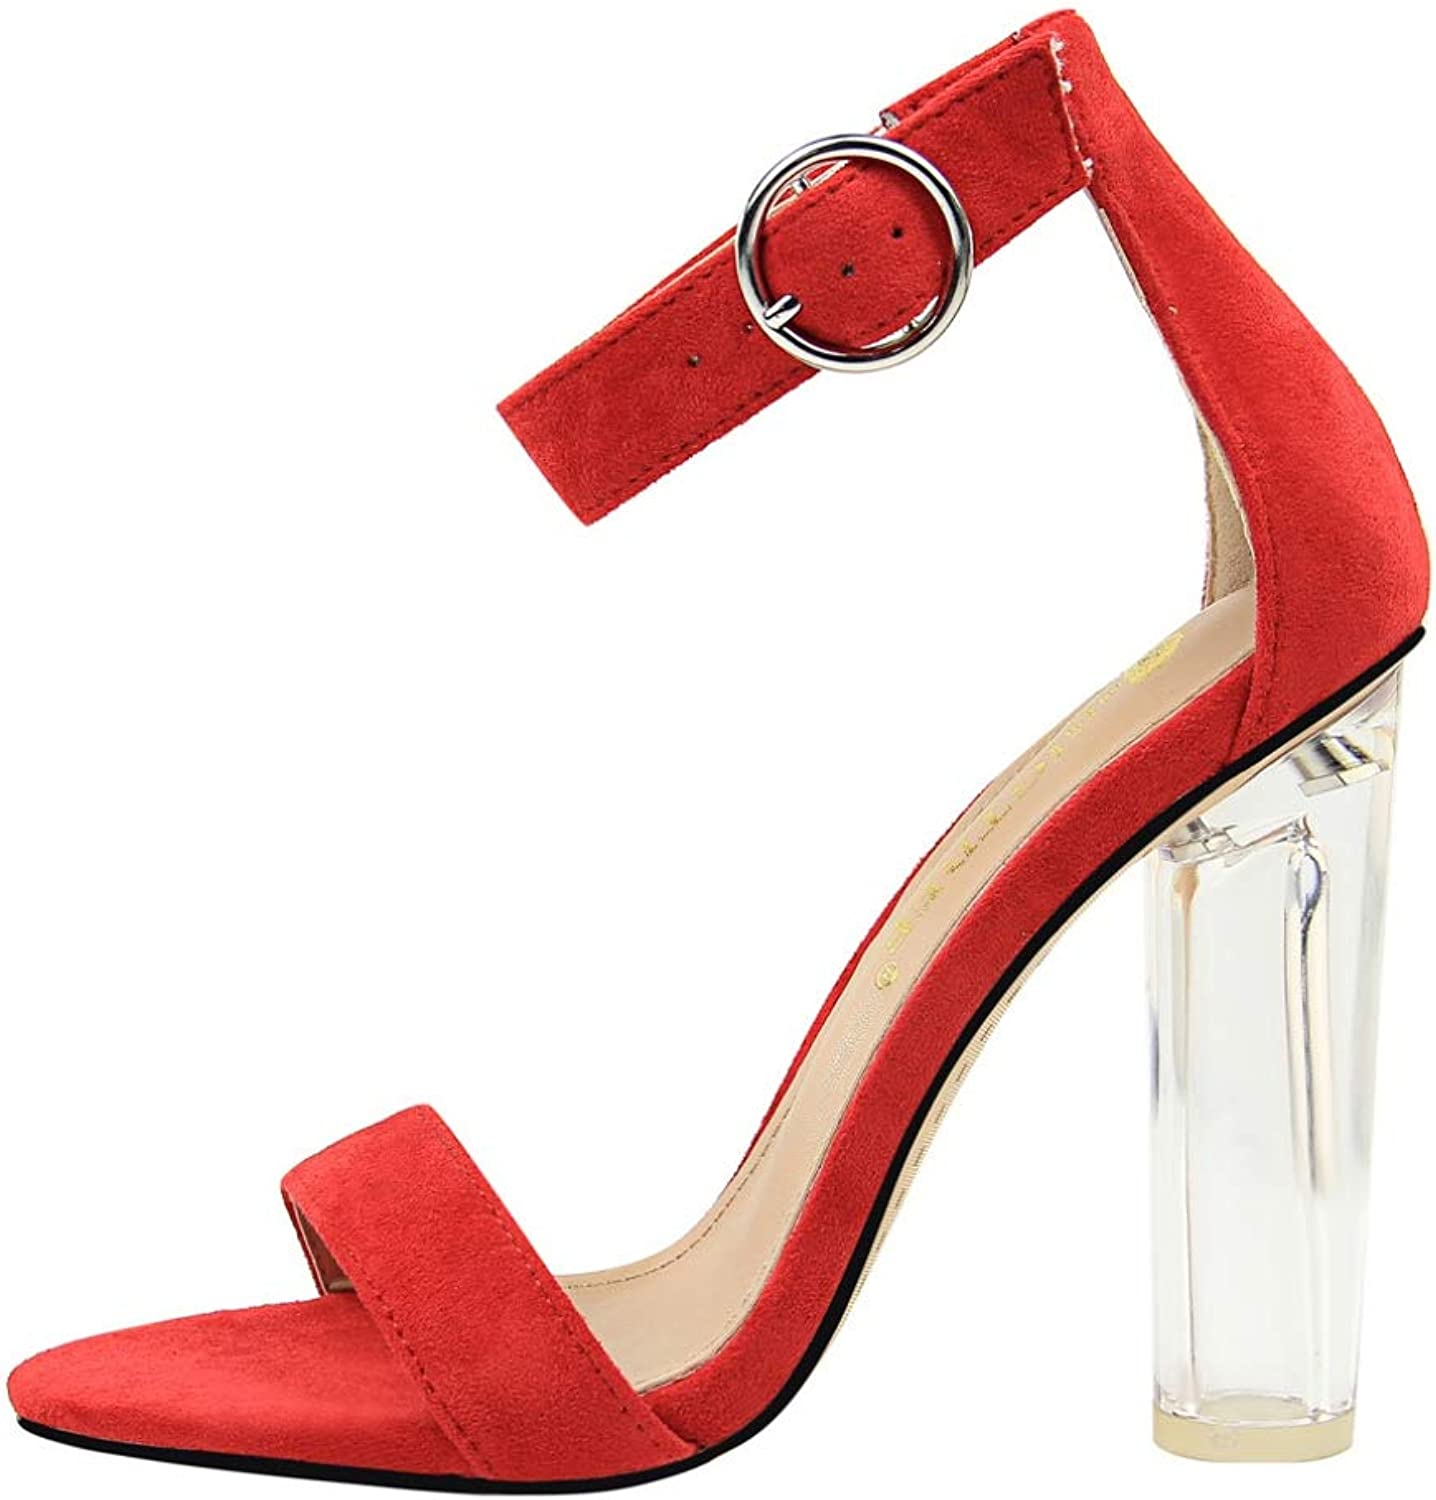 T-JULY Sandal for Women Open Toe with Buckle Strap Transparent Thick High Heels Summer Heels Ladies Sexy Party Elegant shoes